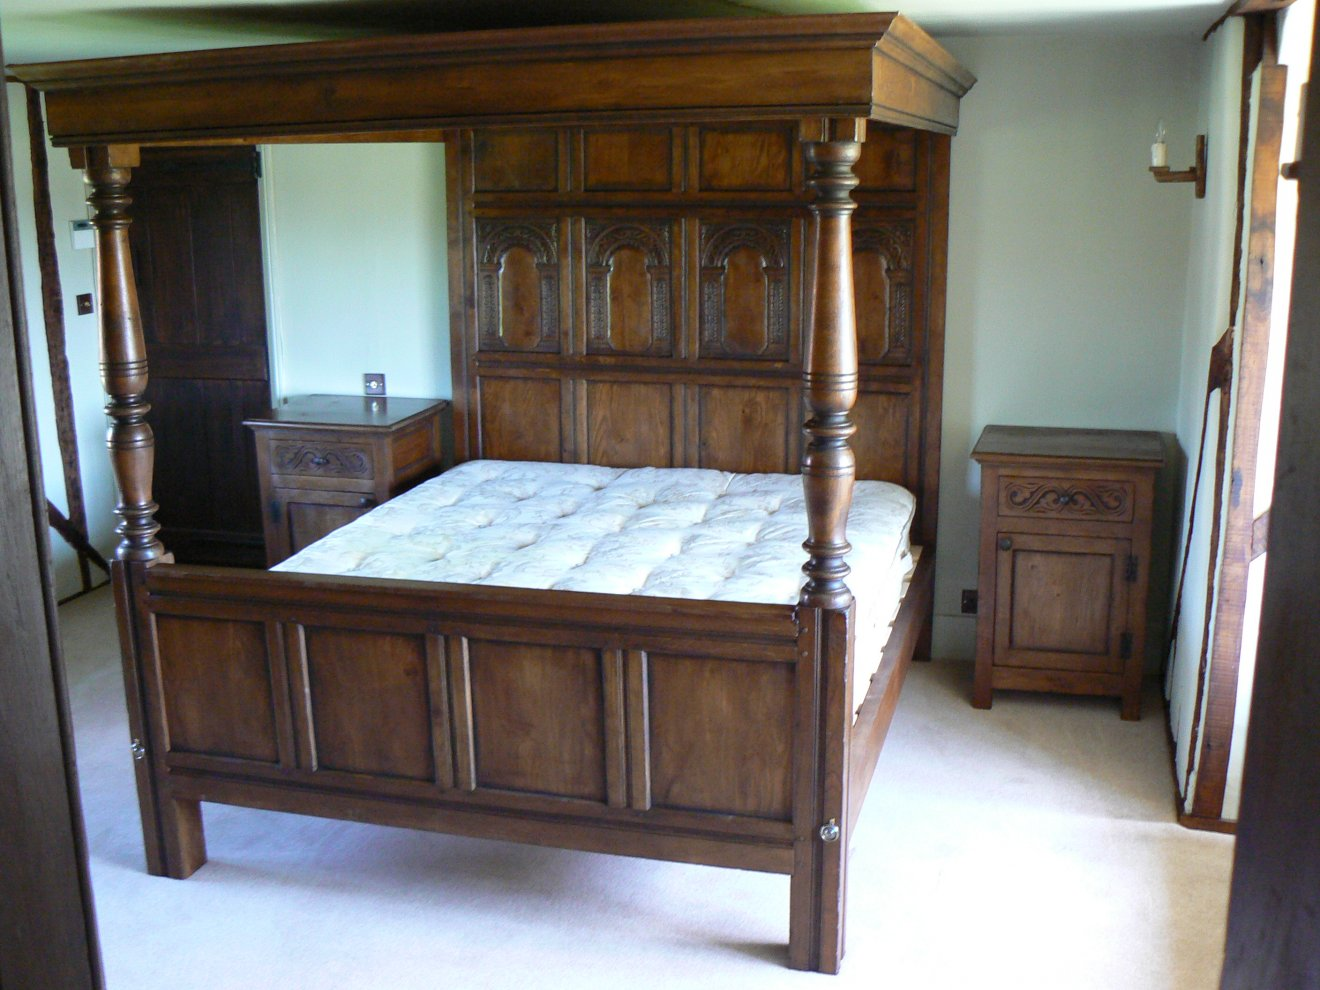 Bedroom Furniture | Distinctive Country Furniture Limited - Makers ...